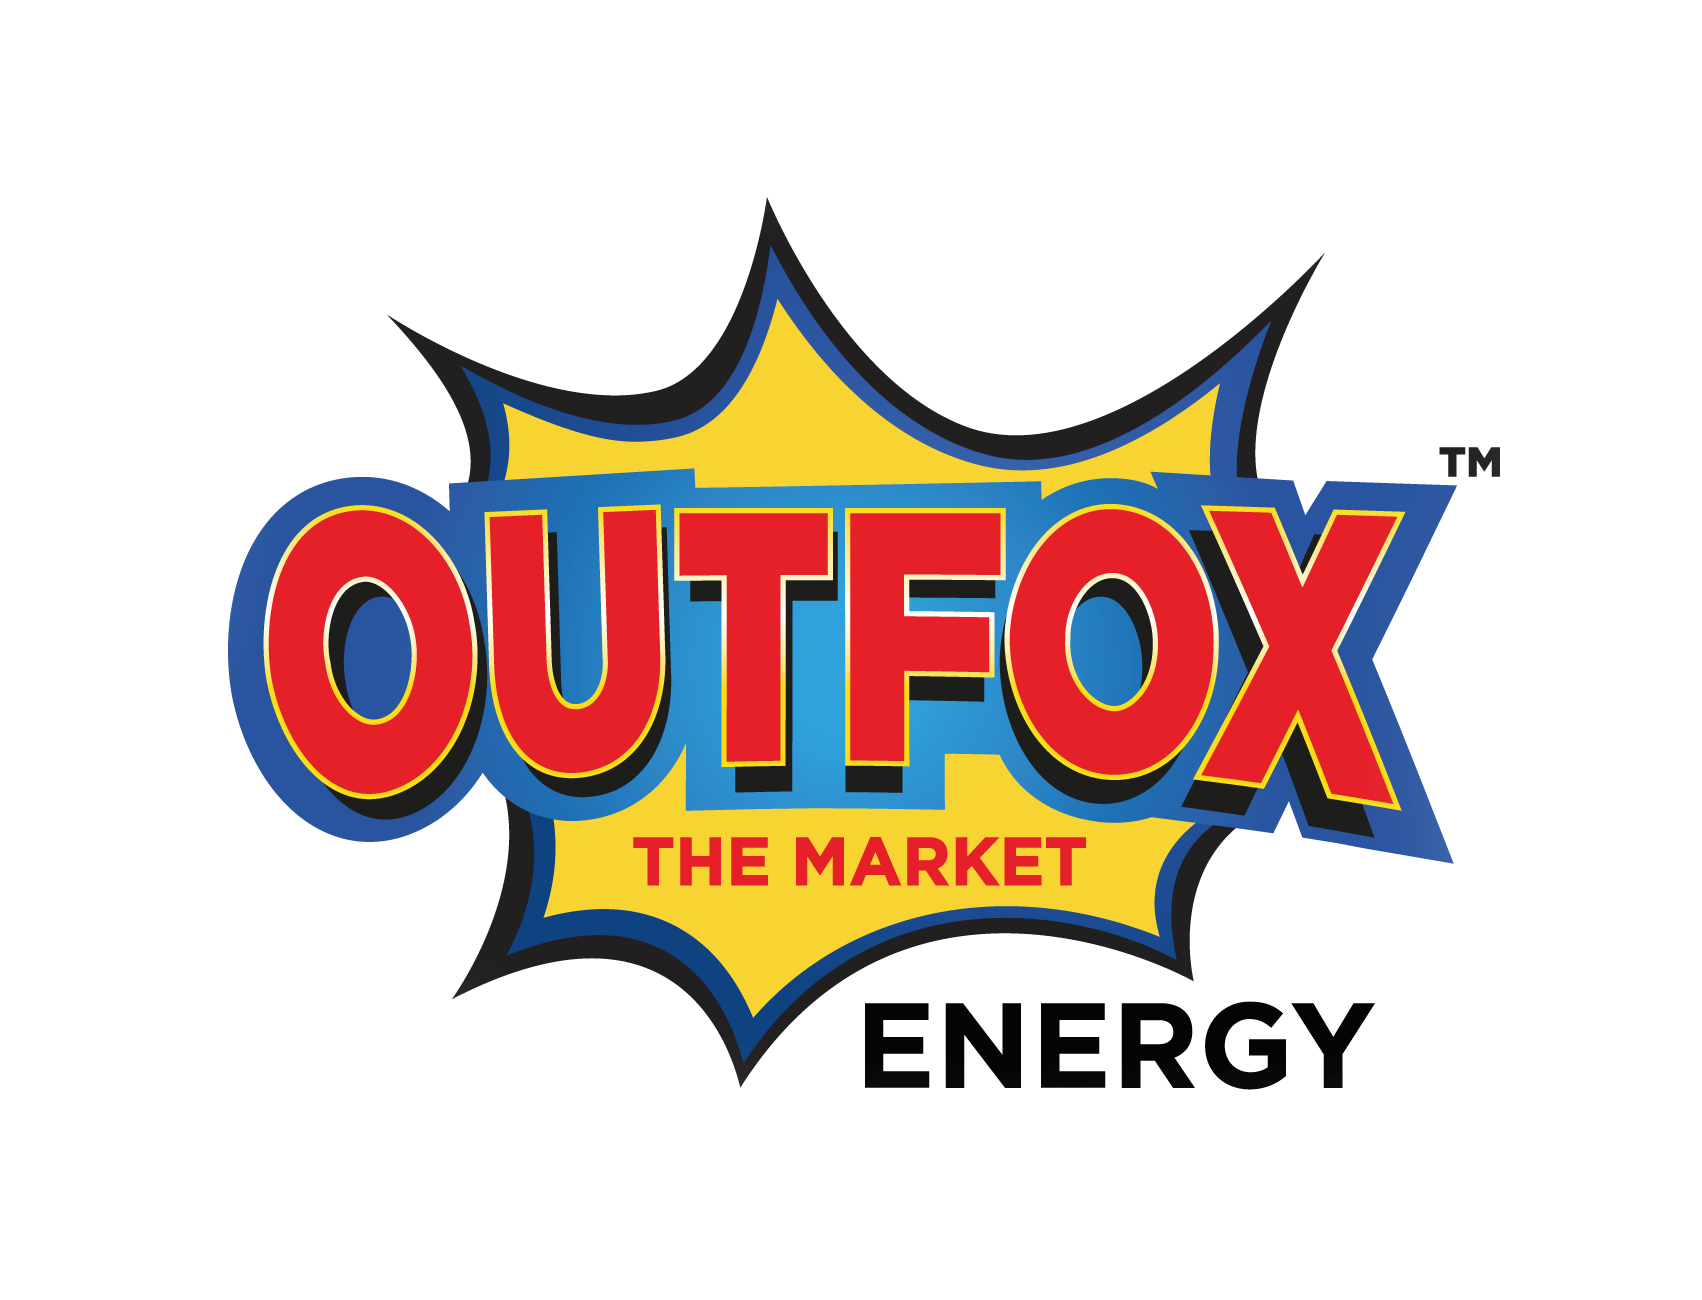 Outfox The Market Help Centre home page